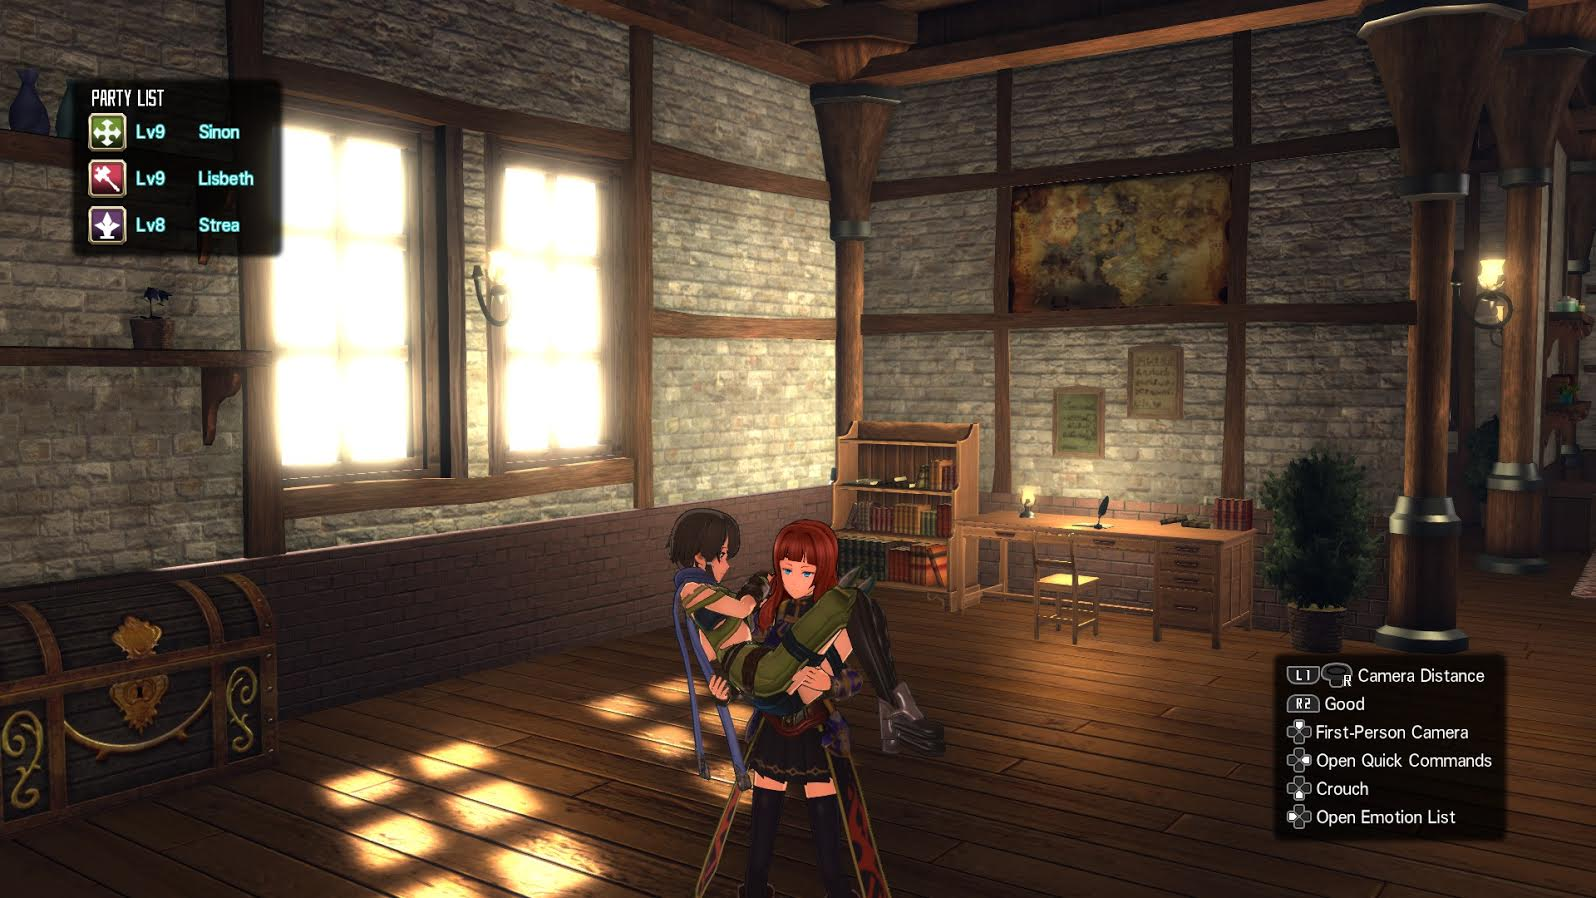 Sword Art Online: Hollow Realization | RPG Site